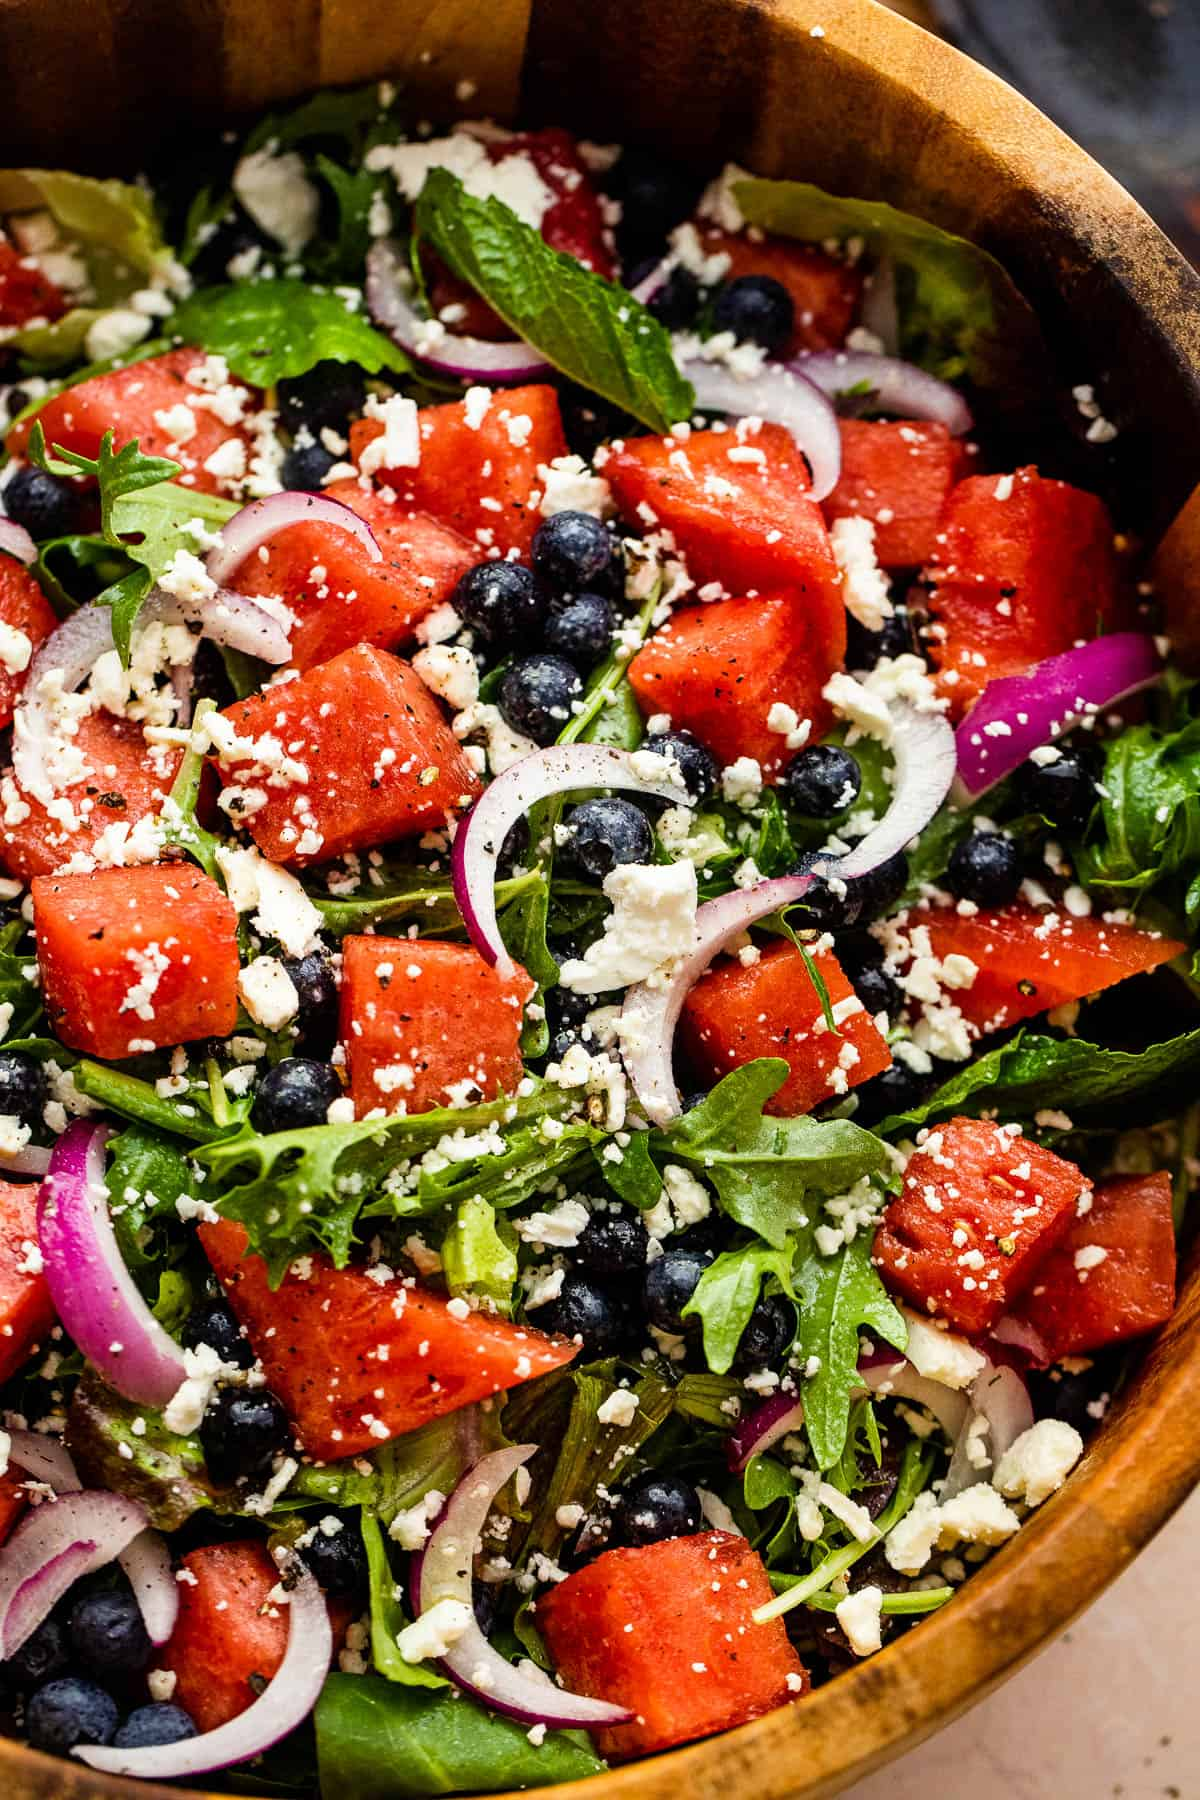 cubed watermelon, blueberries, and sliced red onions atop a bed of torn up lettuce greens and topped with feta cheese crumbles